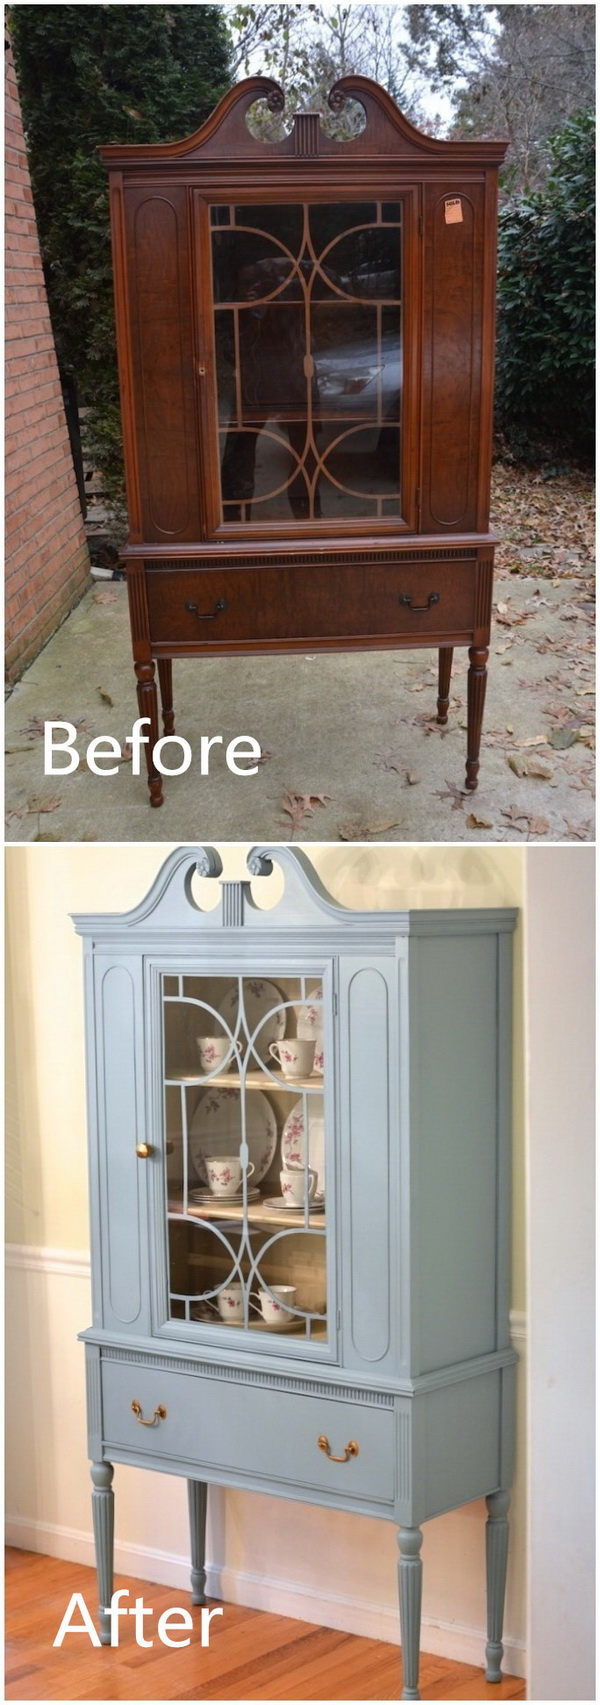 Before & After: Thrifted China Cabinet Makeover.